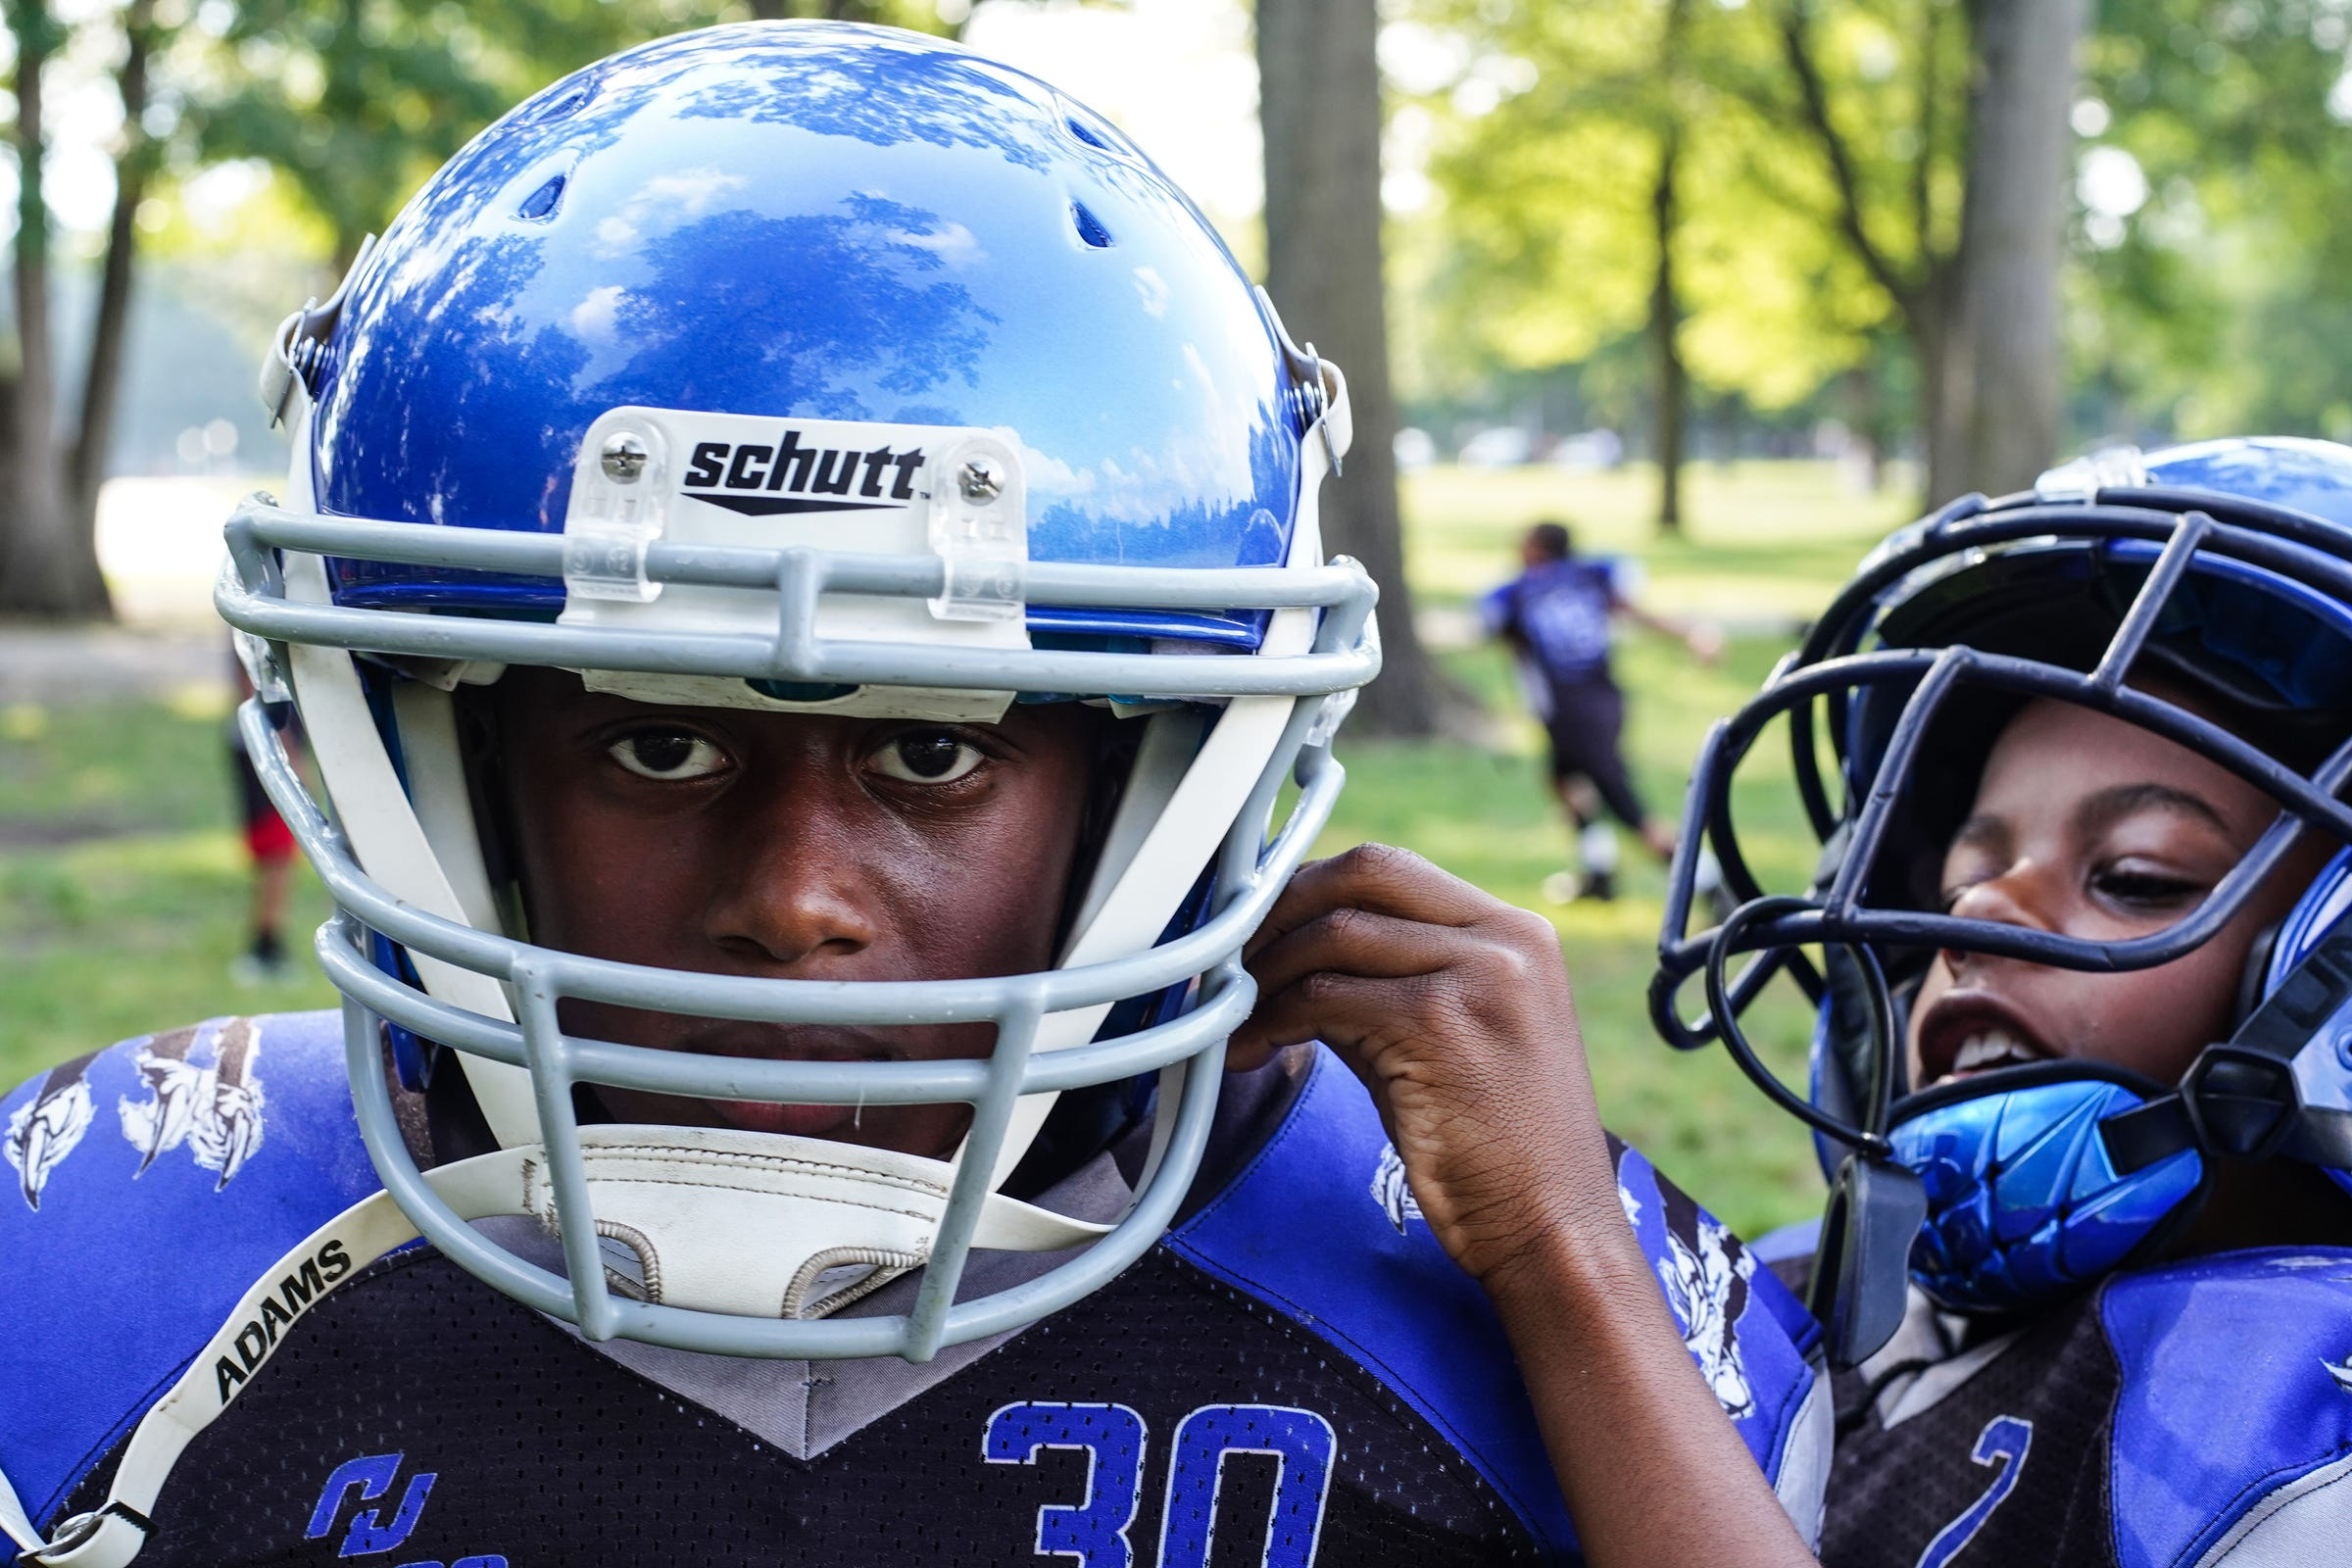 Javon Phillips, 8, of Detroit (right) straps Akeem Crowder, 8, of Detroit helmet before practice at Marygrove College in Detroit on July 29, 2021. Detroit City Lions, a youth program founded by Devon Buskin is more than a youth football program. The program offers robotics classes, volleyball, musical arts along with football and cheer.